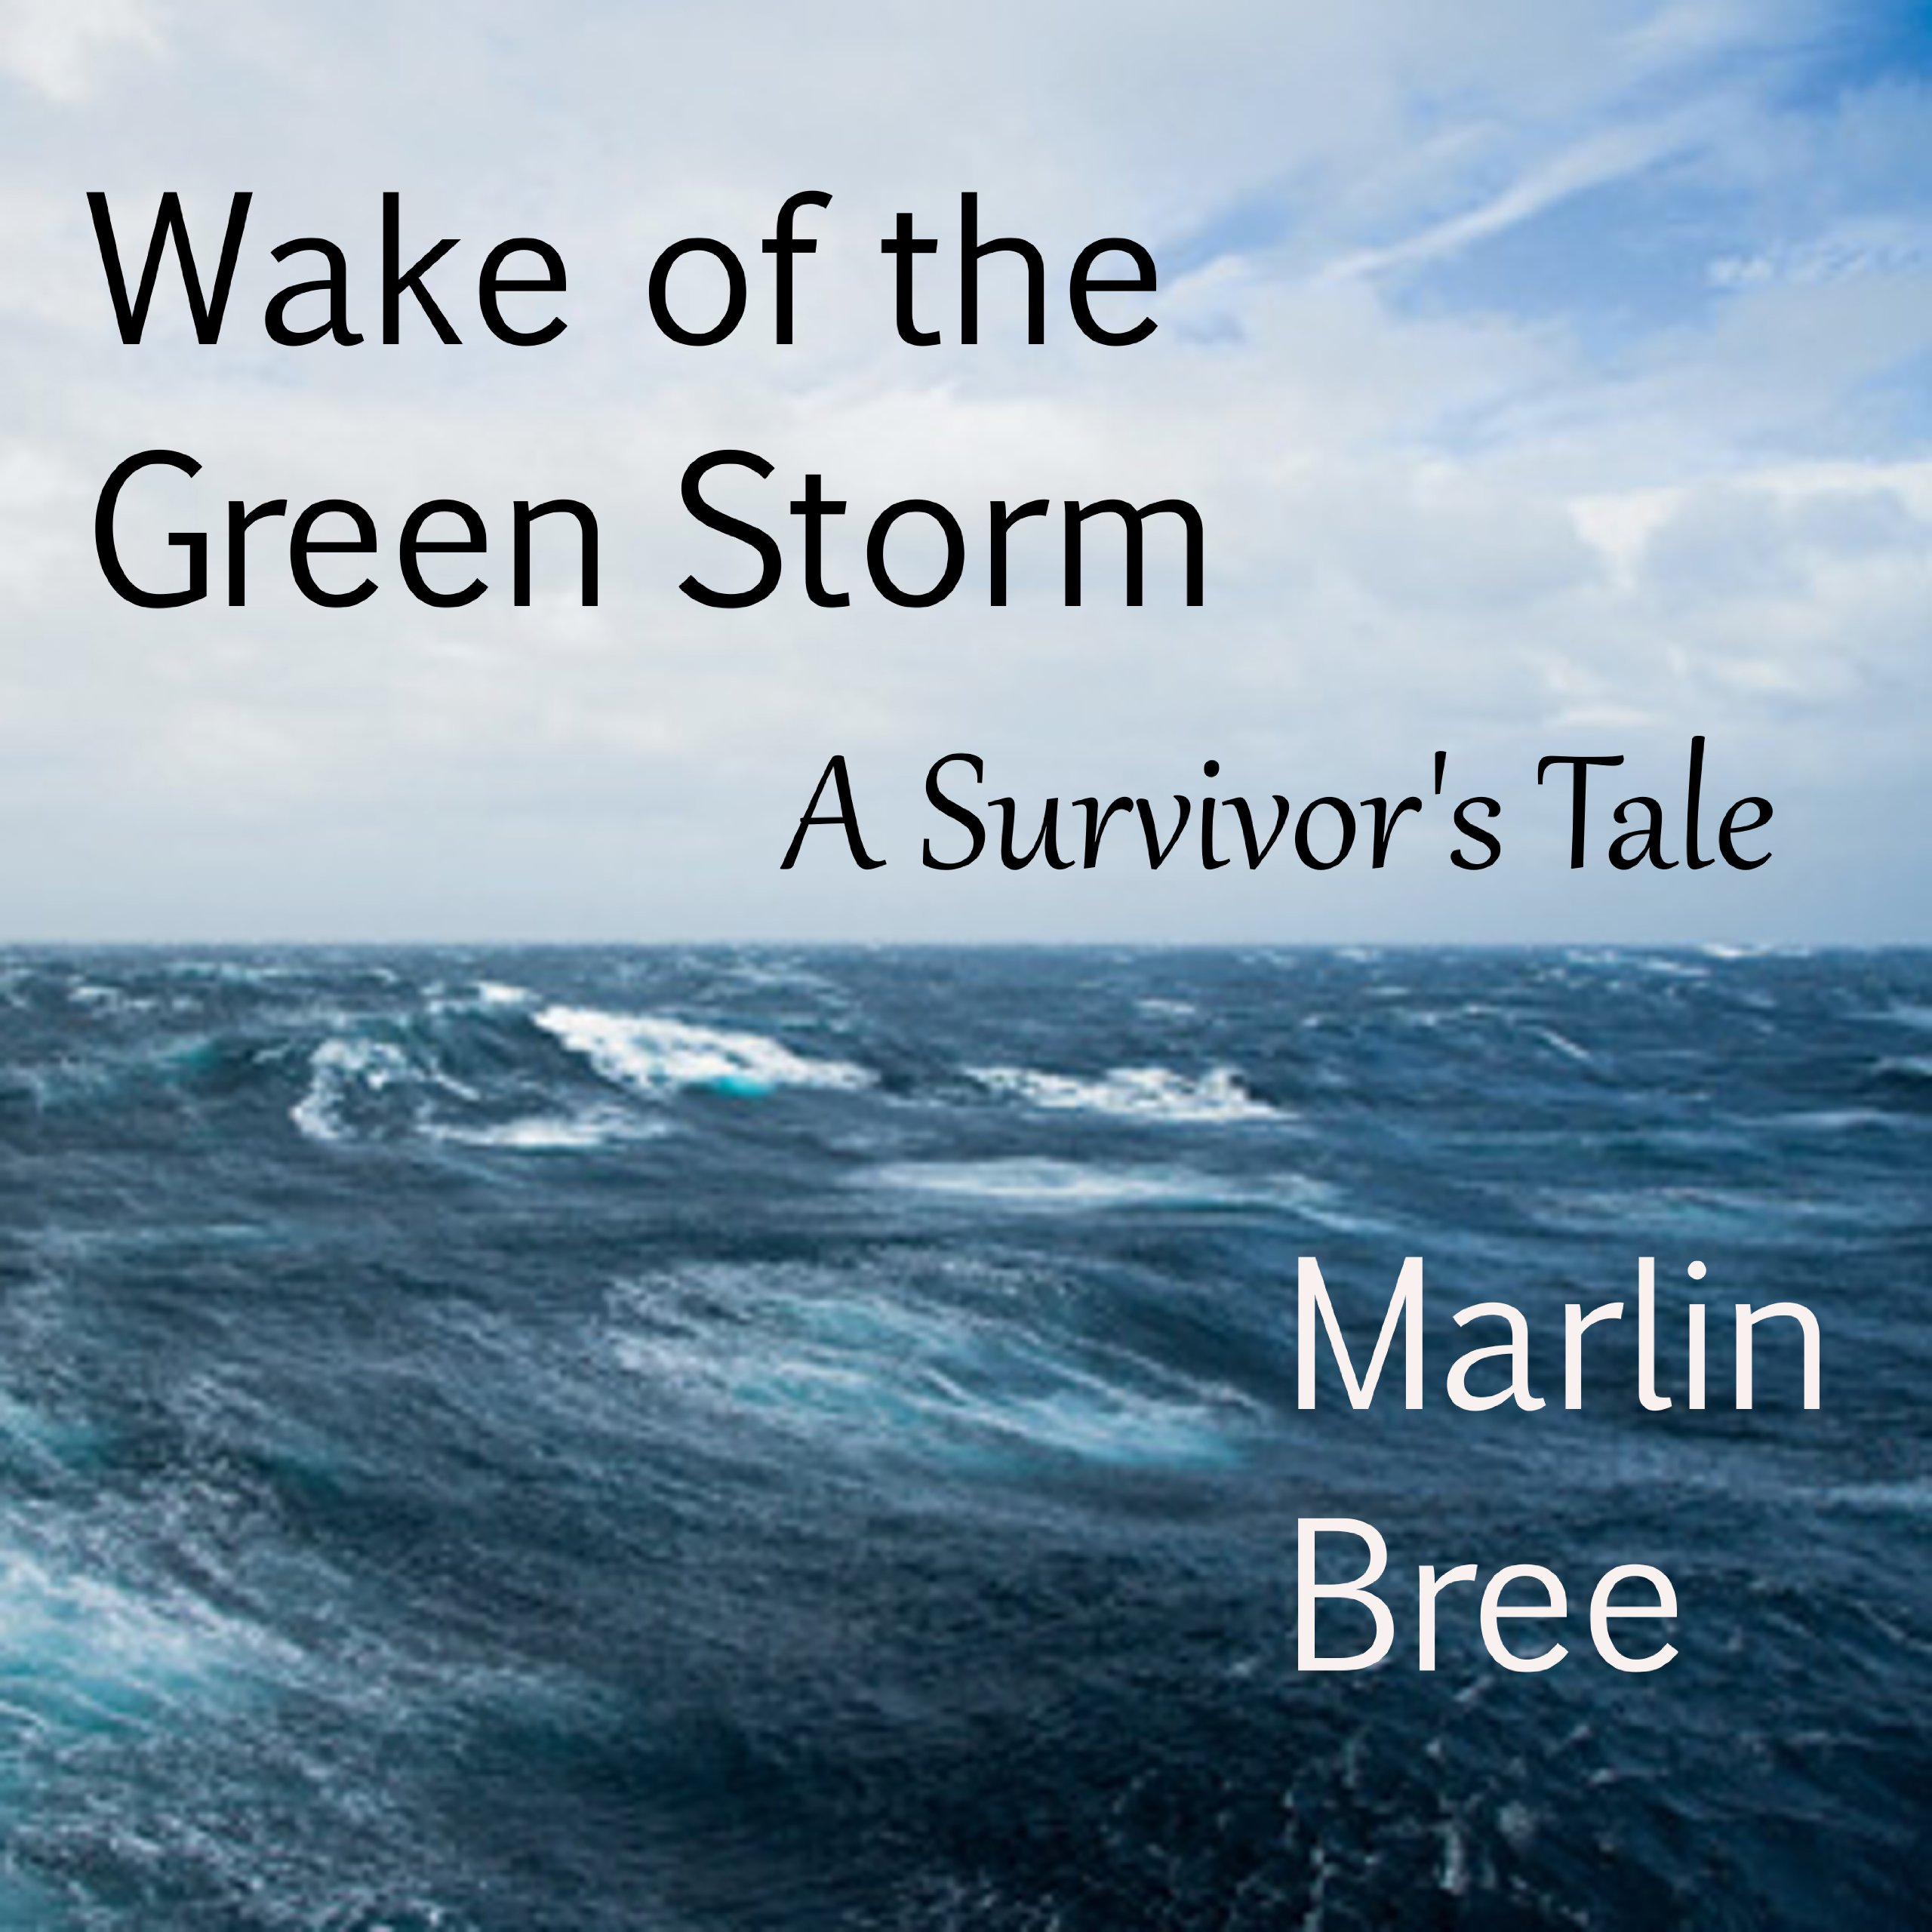 Wake of the Green Storm: A Survivor's Tale